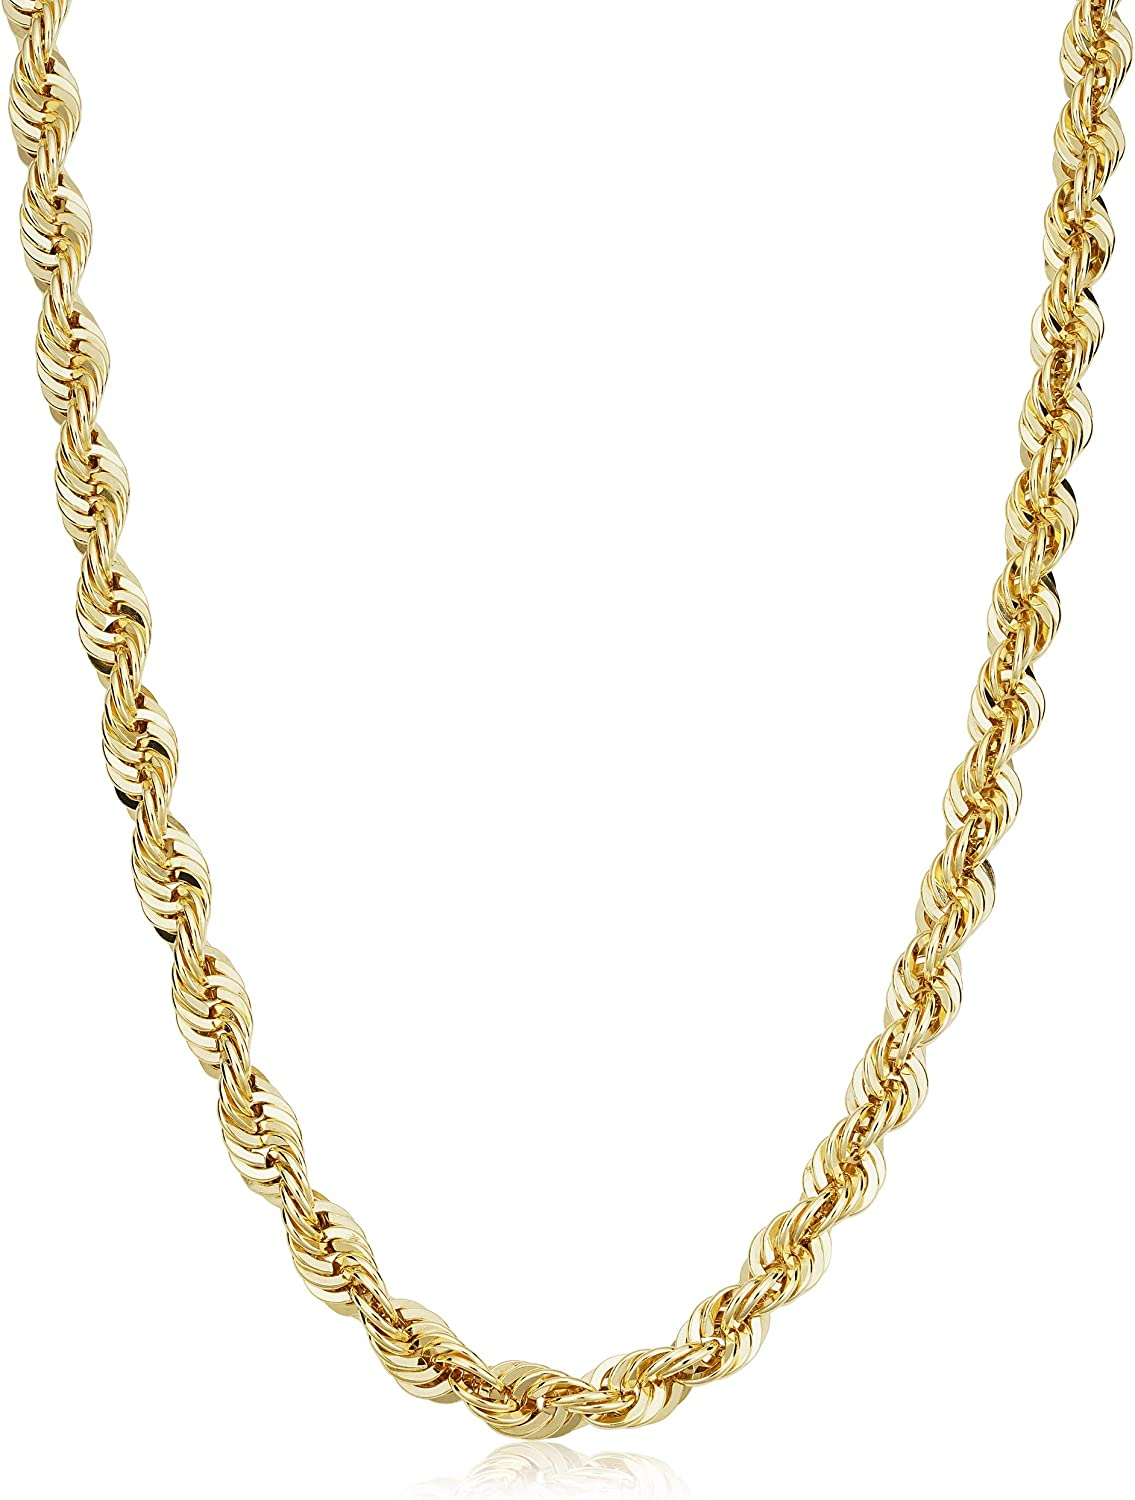 Solid 14k Yellow Gold Filled Rope Chain Necklace for Men and Women (2.1 mm, 3.2 mm, 4.2 mm or 6 mm)